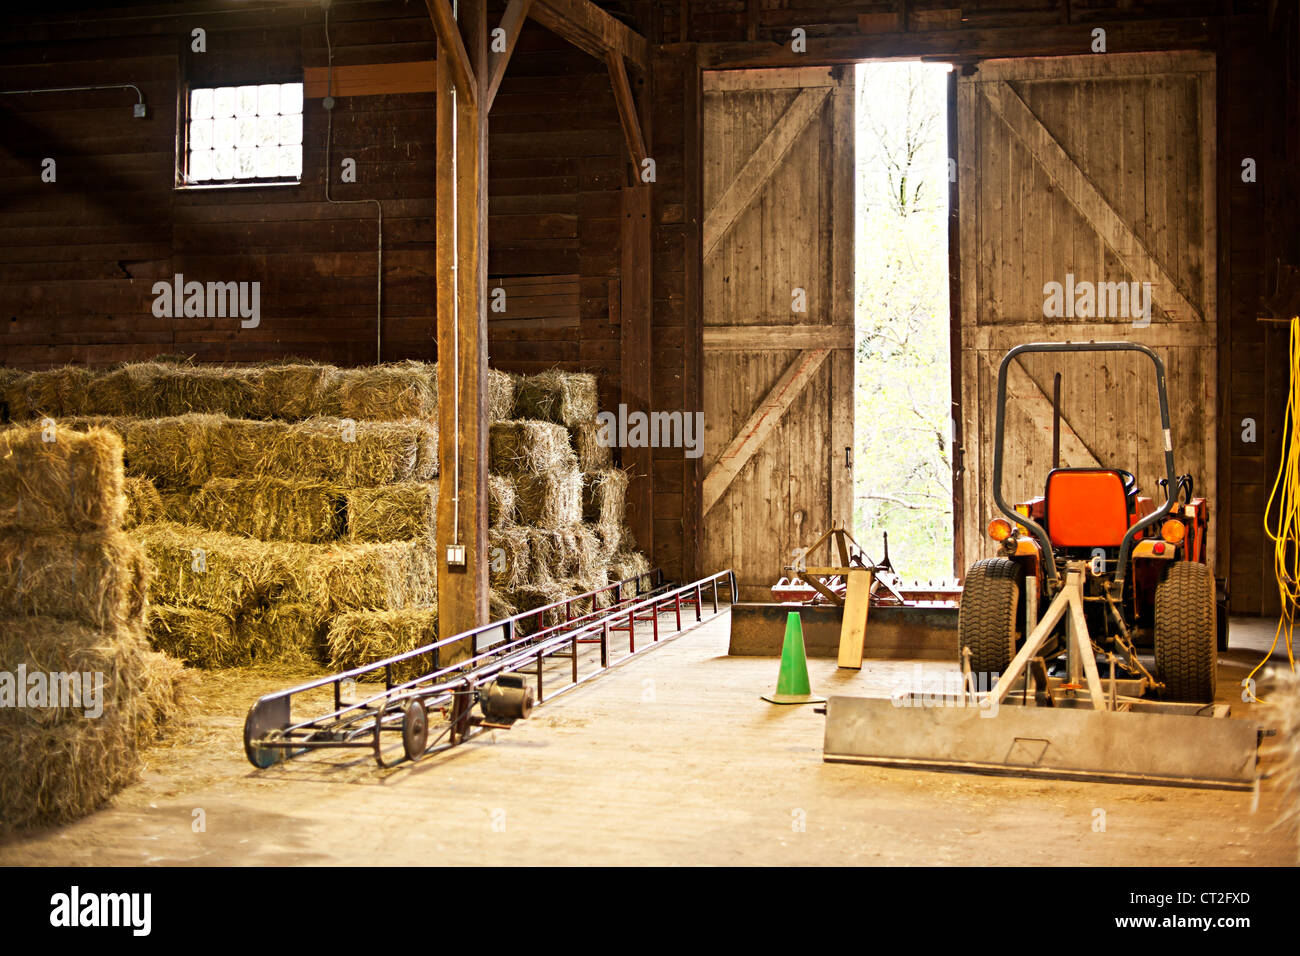 Interior of wooden barn with hay bales stacks and farm equipment - Stock Image